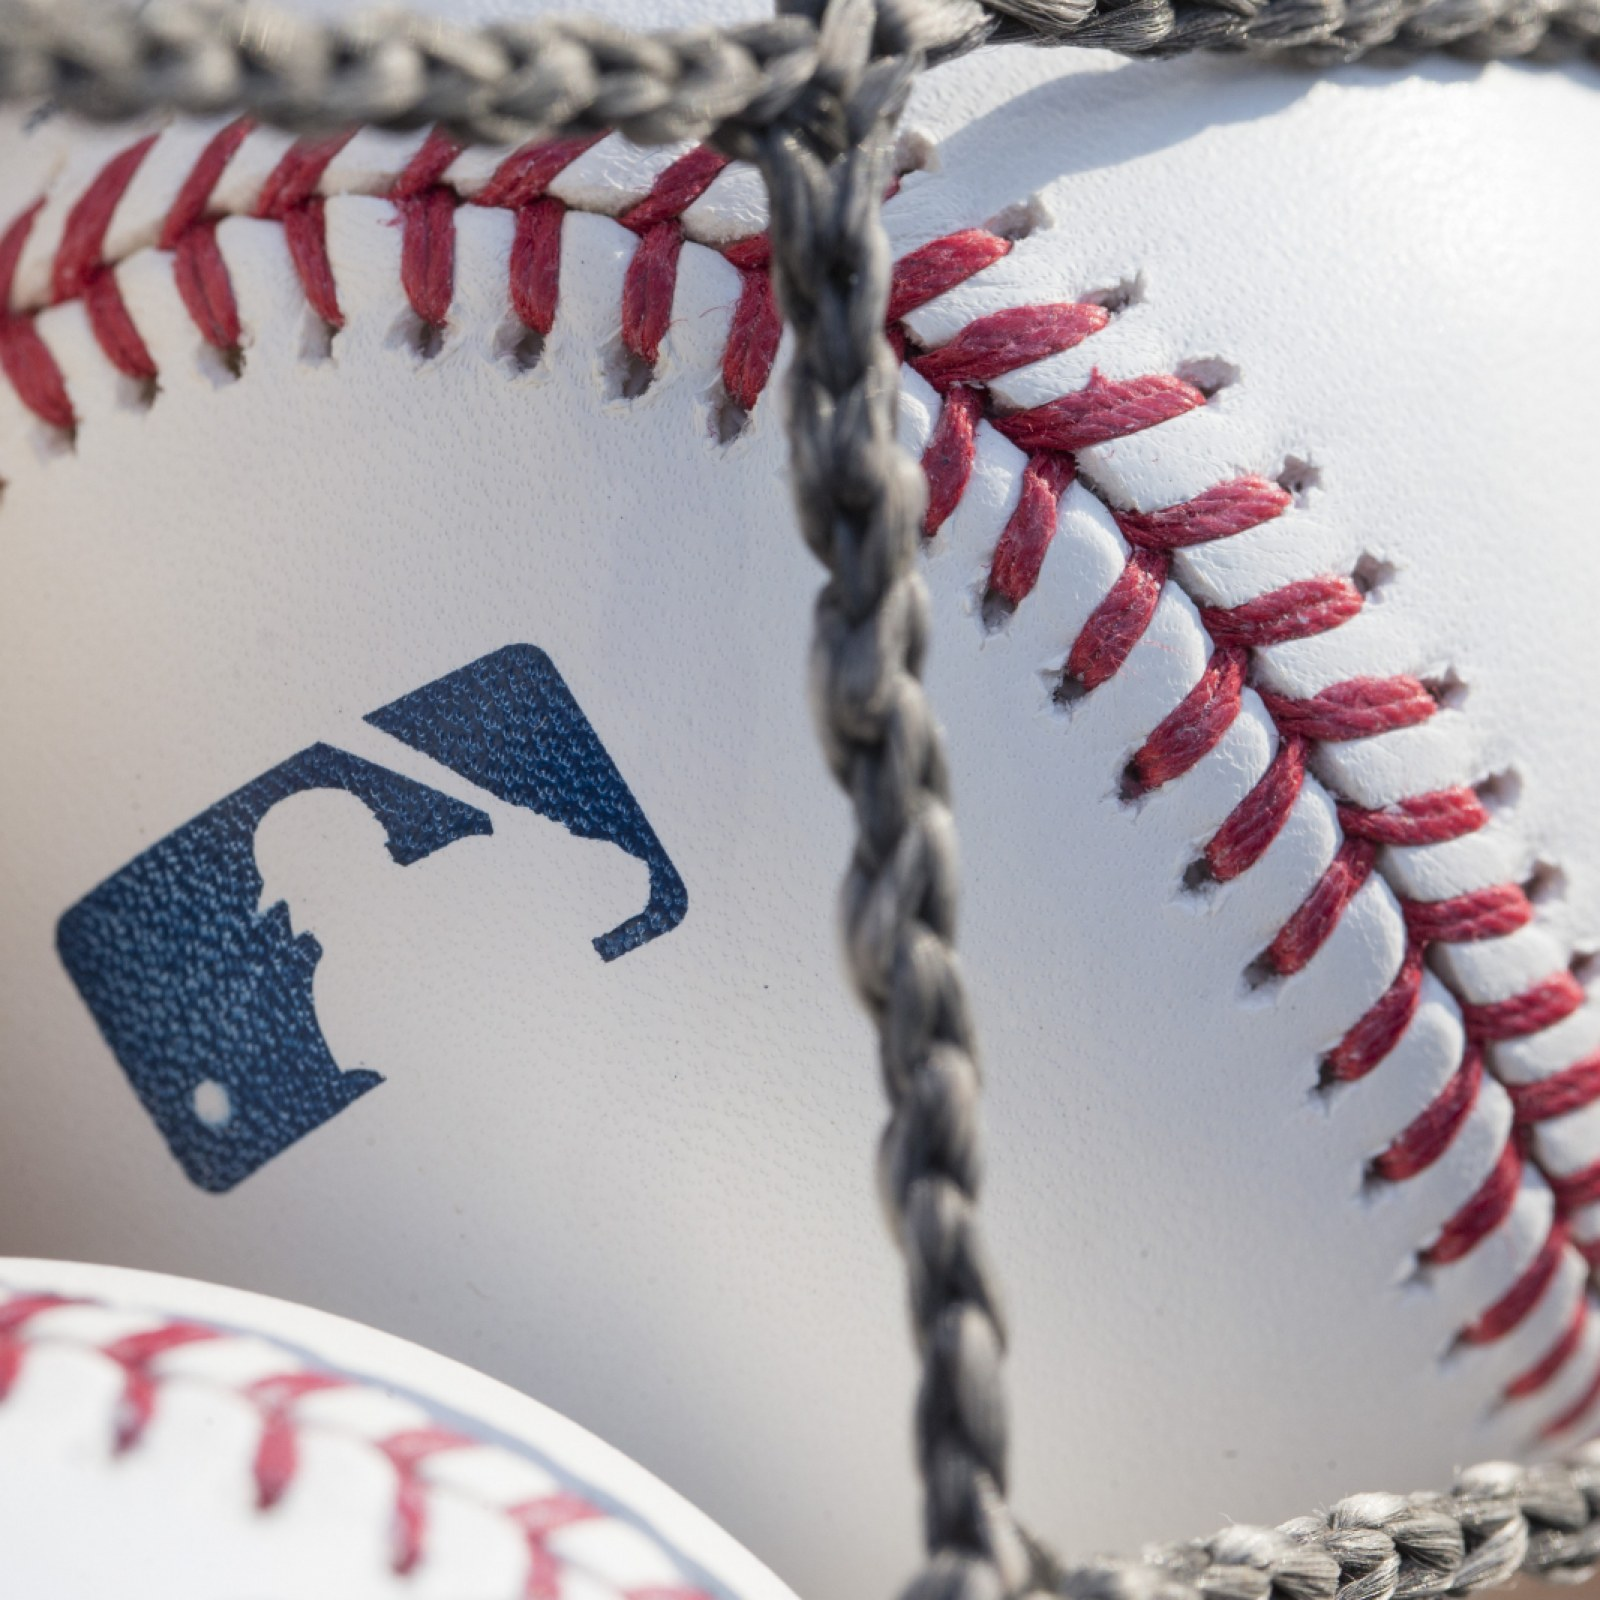 MLB Draft 2019 Today: TV Channel, Live Stream and Pick Order for